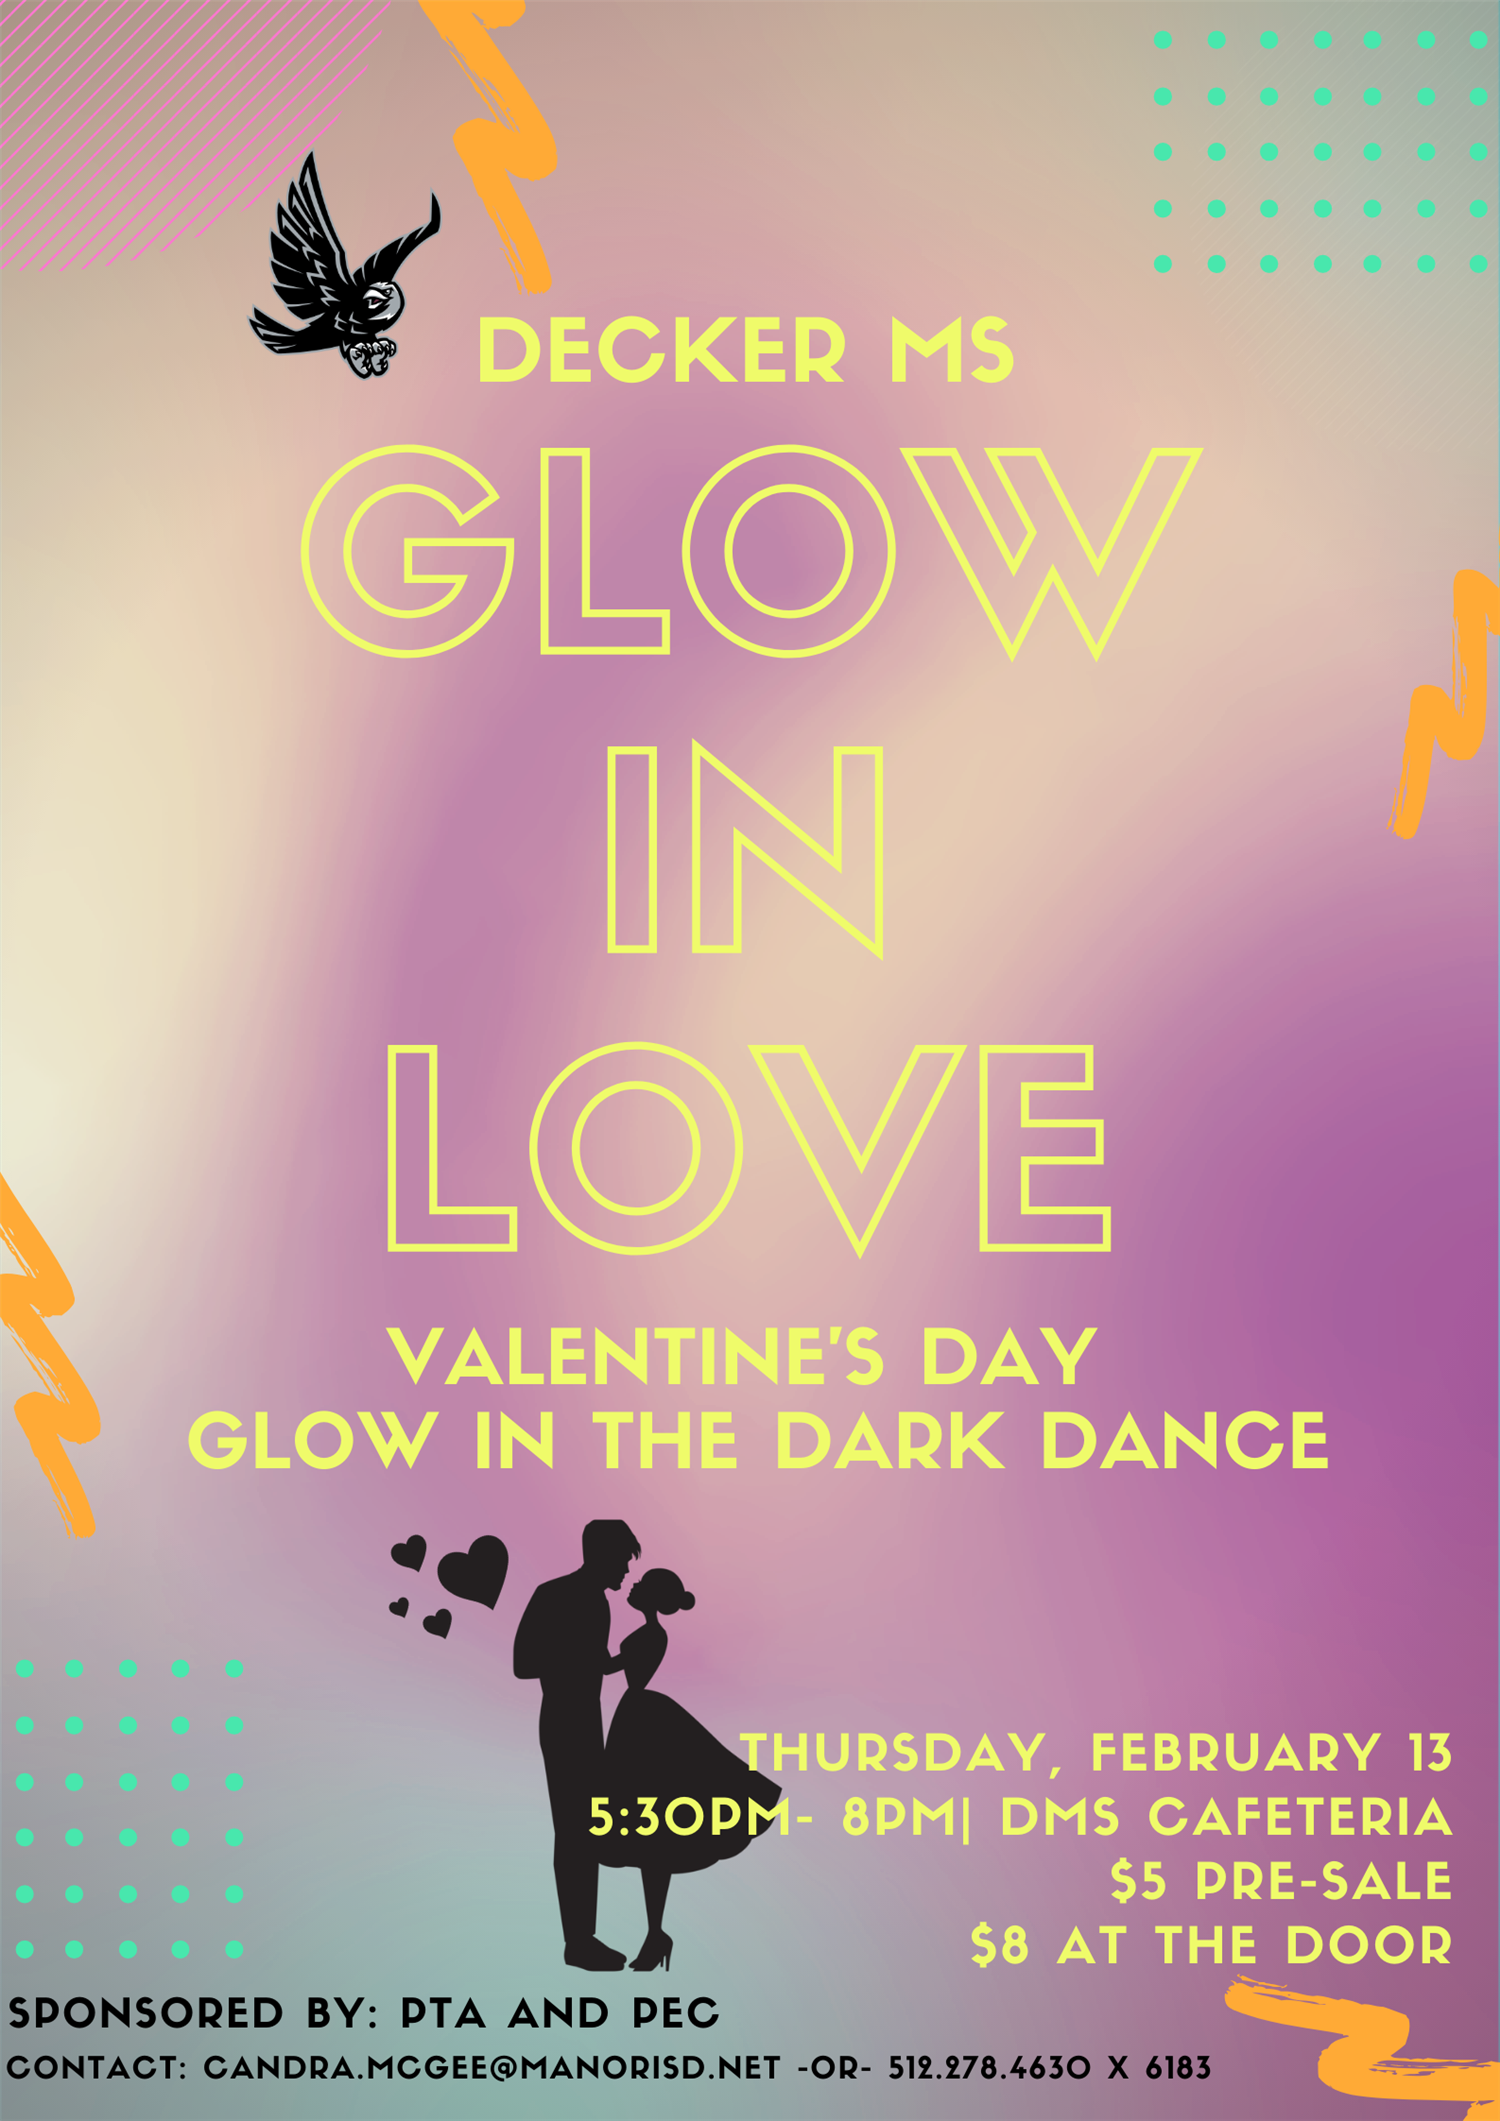 Decker MS Glow in Love Valentine's Dance